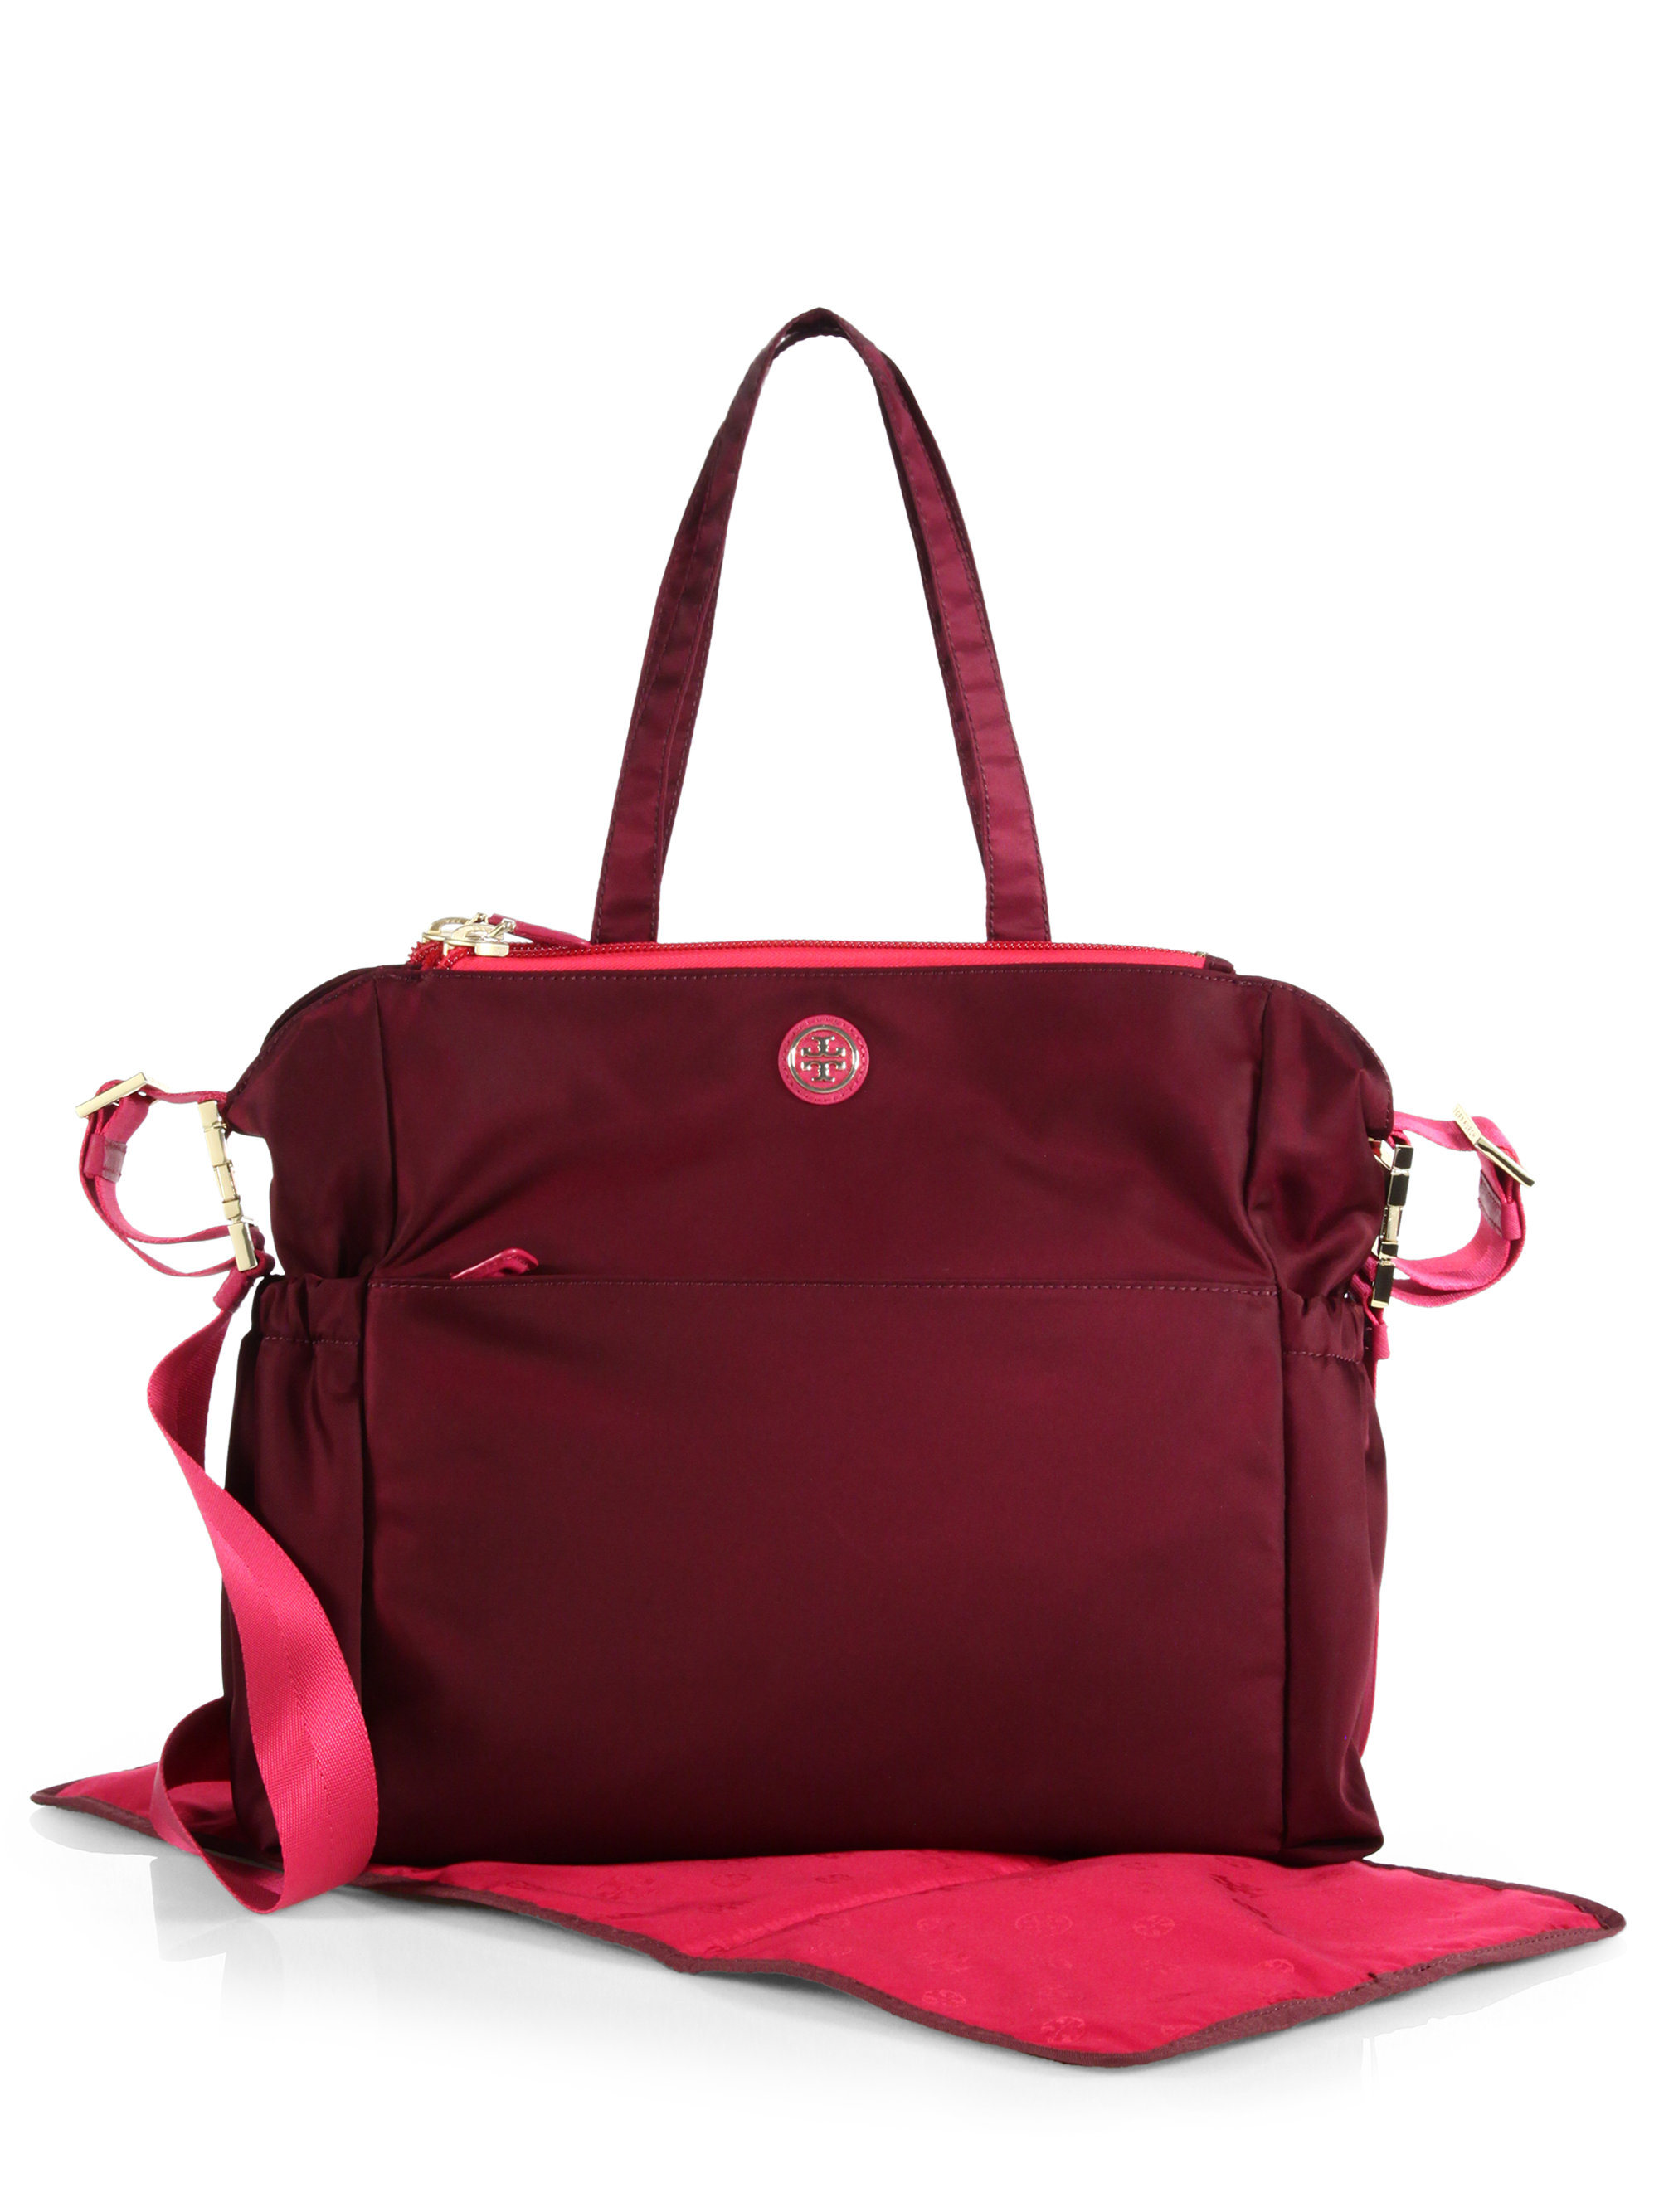 tory burch travel nylon diaper bag in red lyst. Black Bedroom Furniture Sets. Home Design Ideas